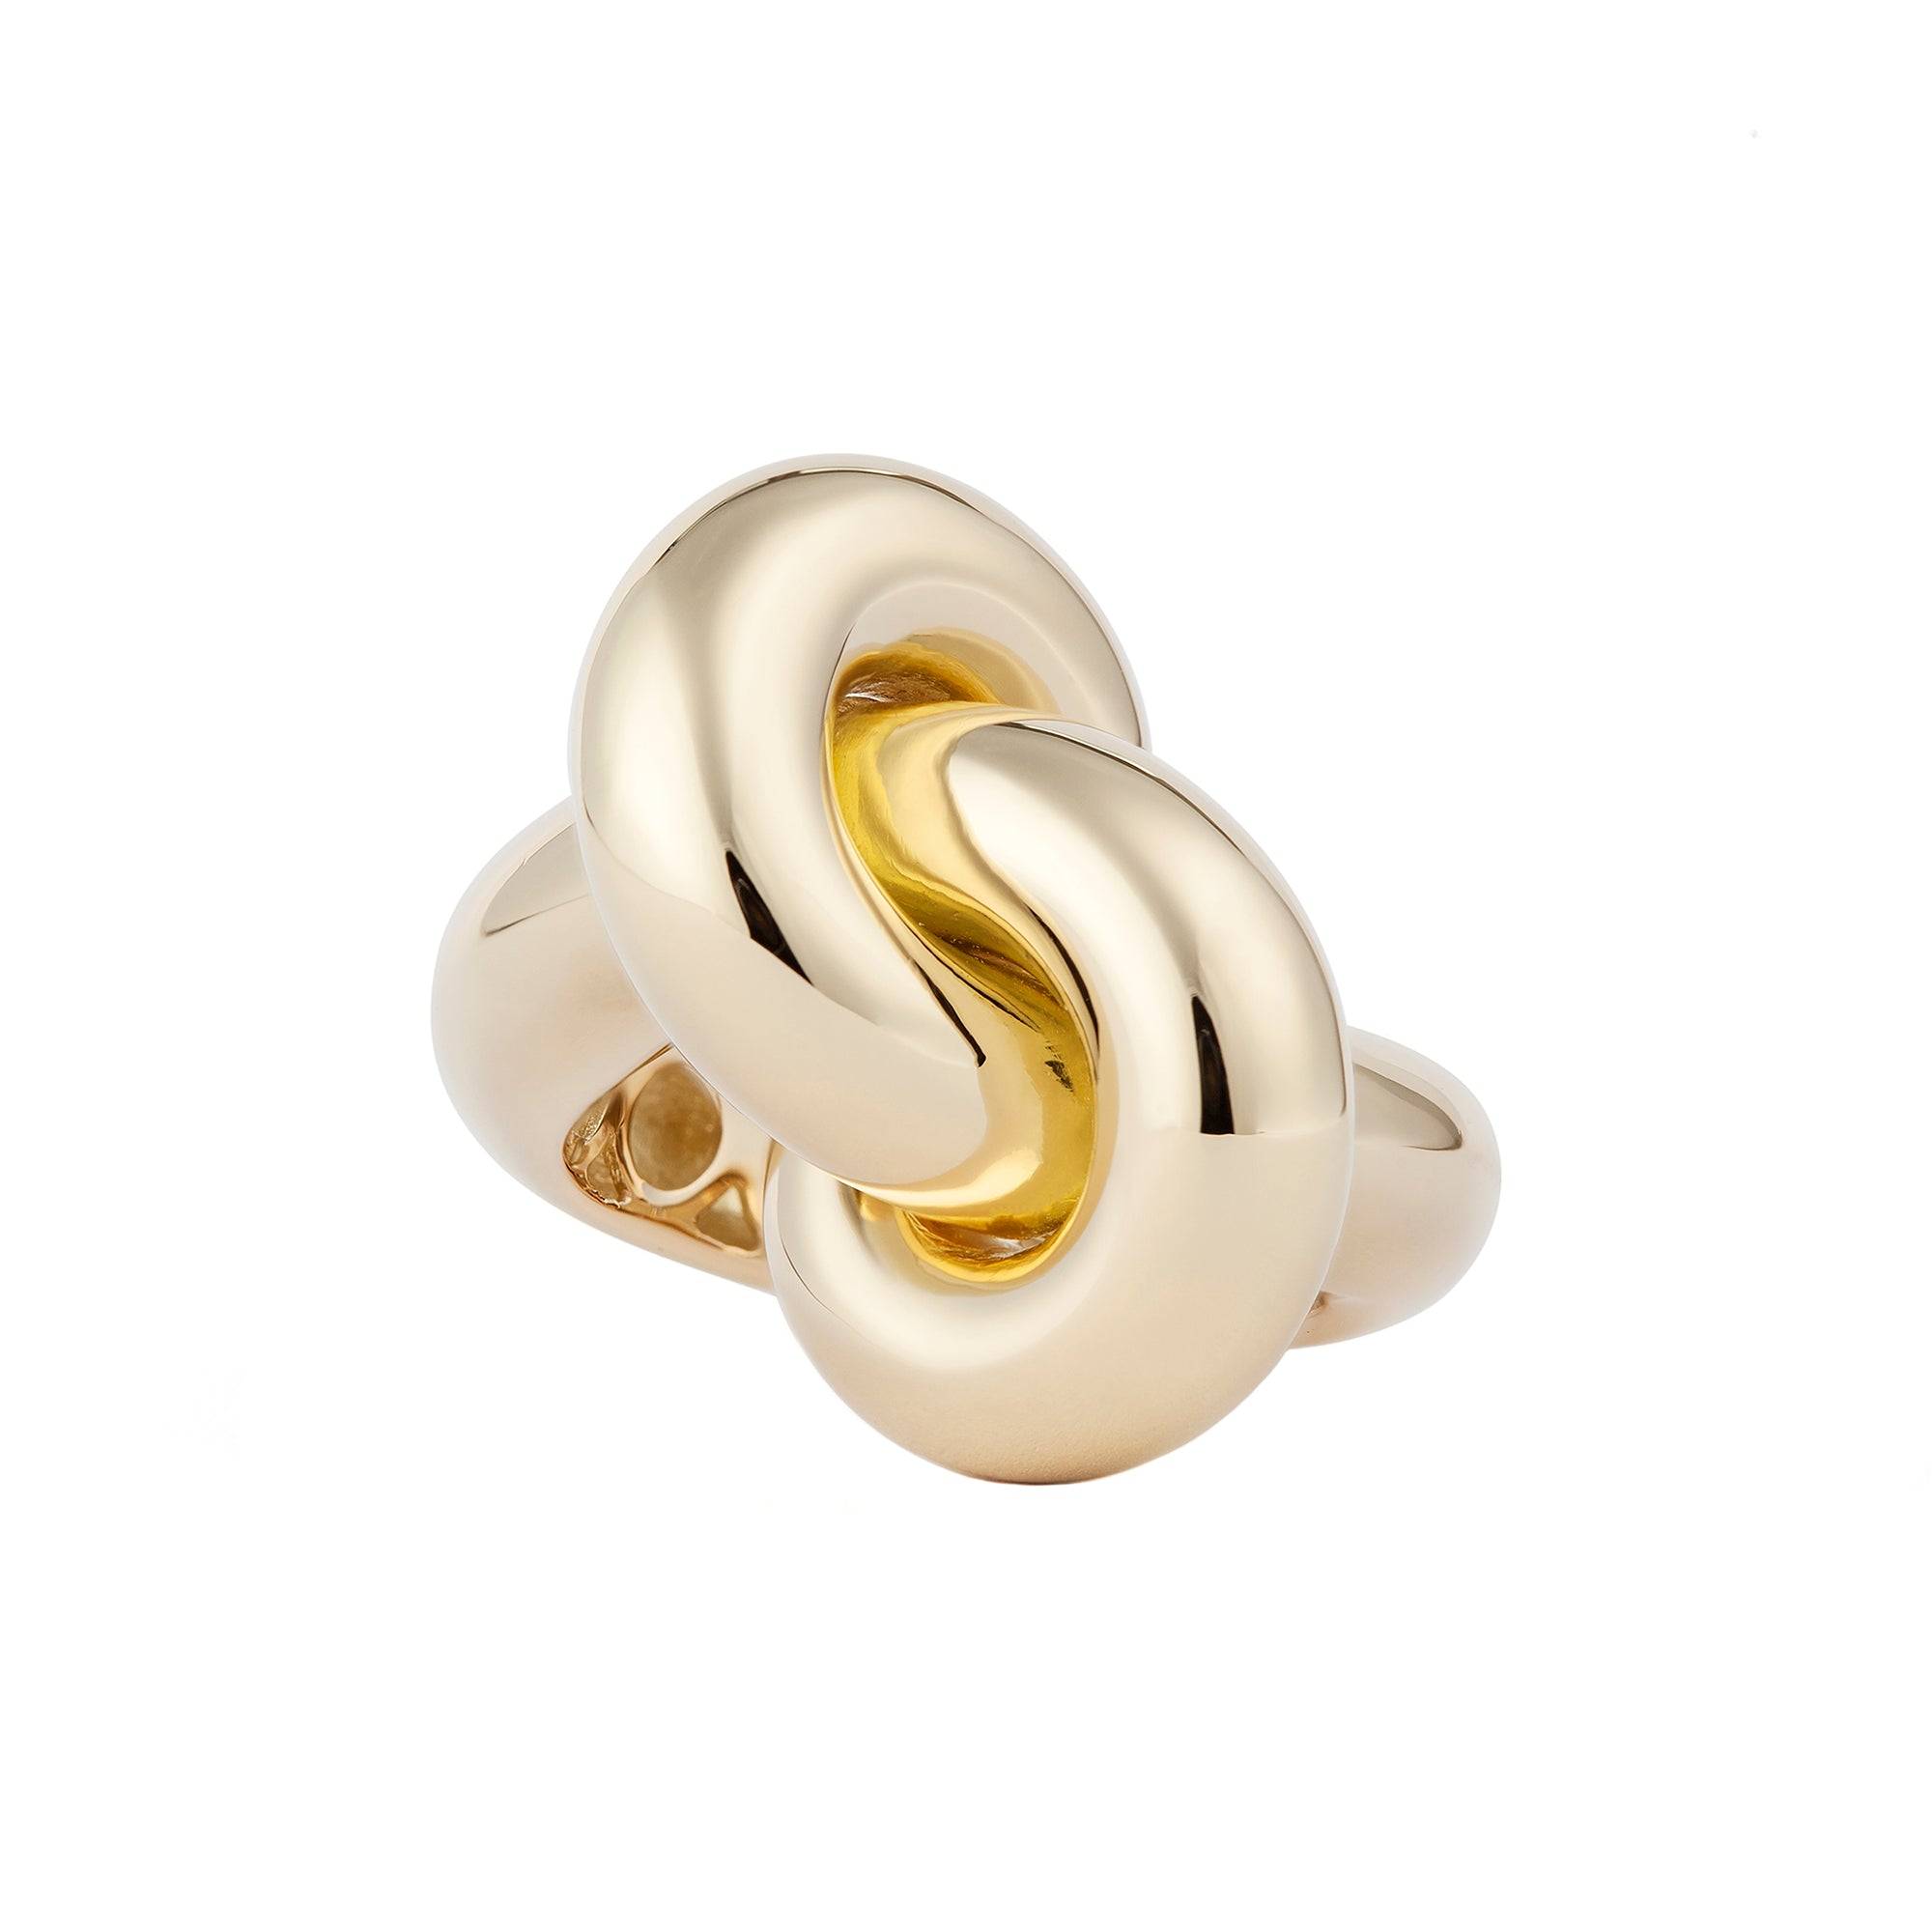 Fat Knot Ring By Engelbert Rings Broken English Jewelry